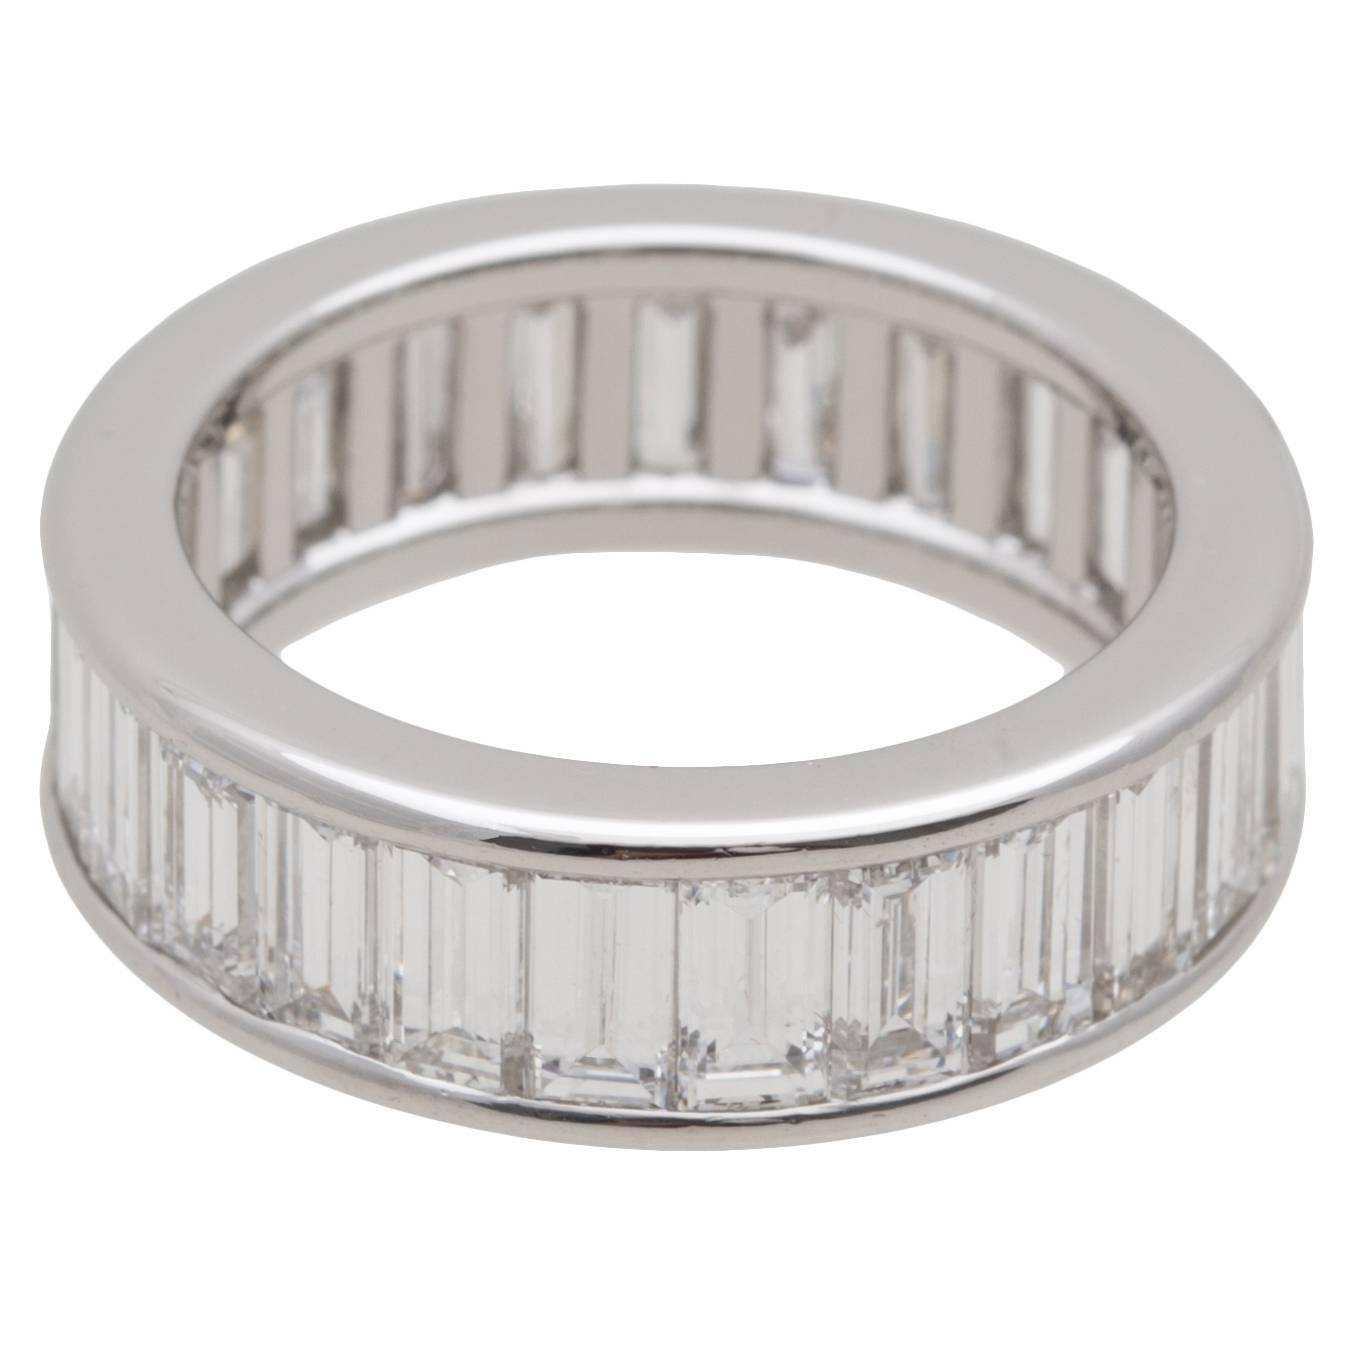 Cartier Diamond Baguette Platinum Eternity Wedding Ring For Sale Within Baguette Cut Diamond Wedding Bands (View 10 of 15)